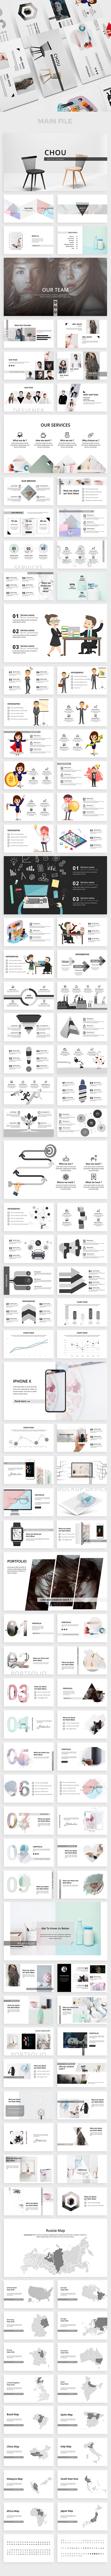 Chou Minimal Powerpoint Template - Creative PowerPoint Templates